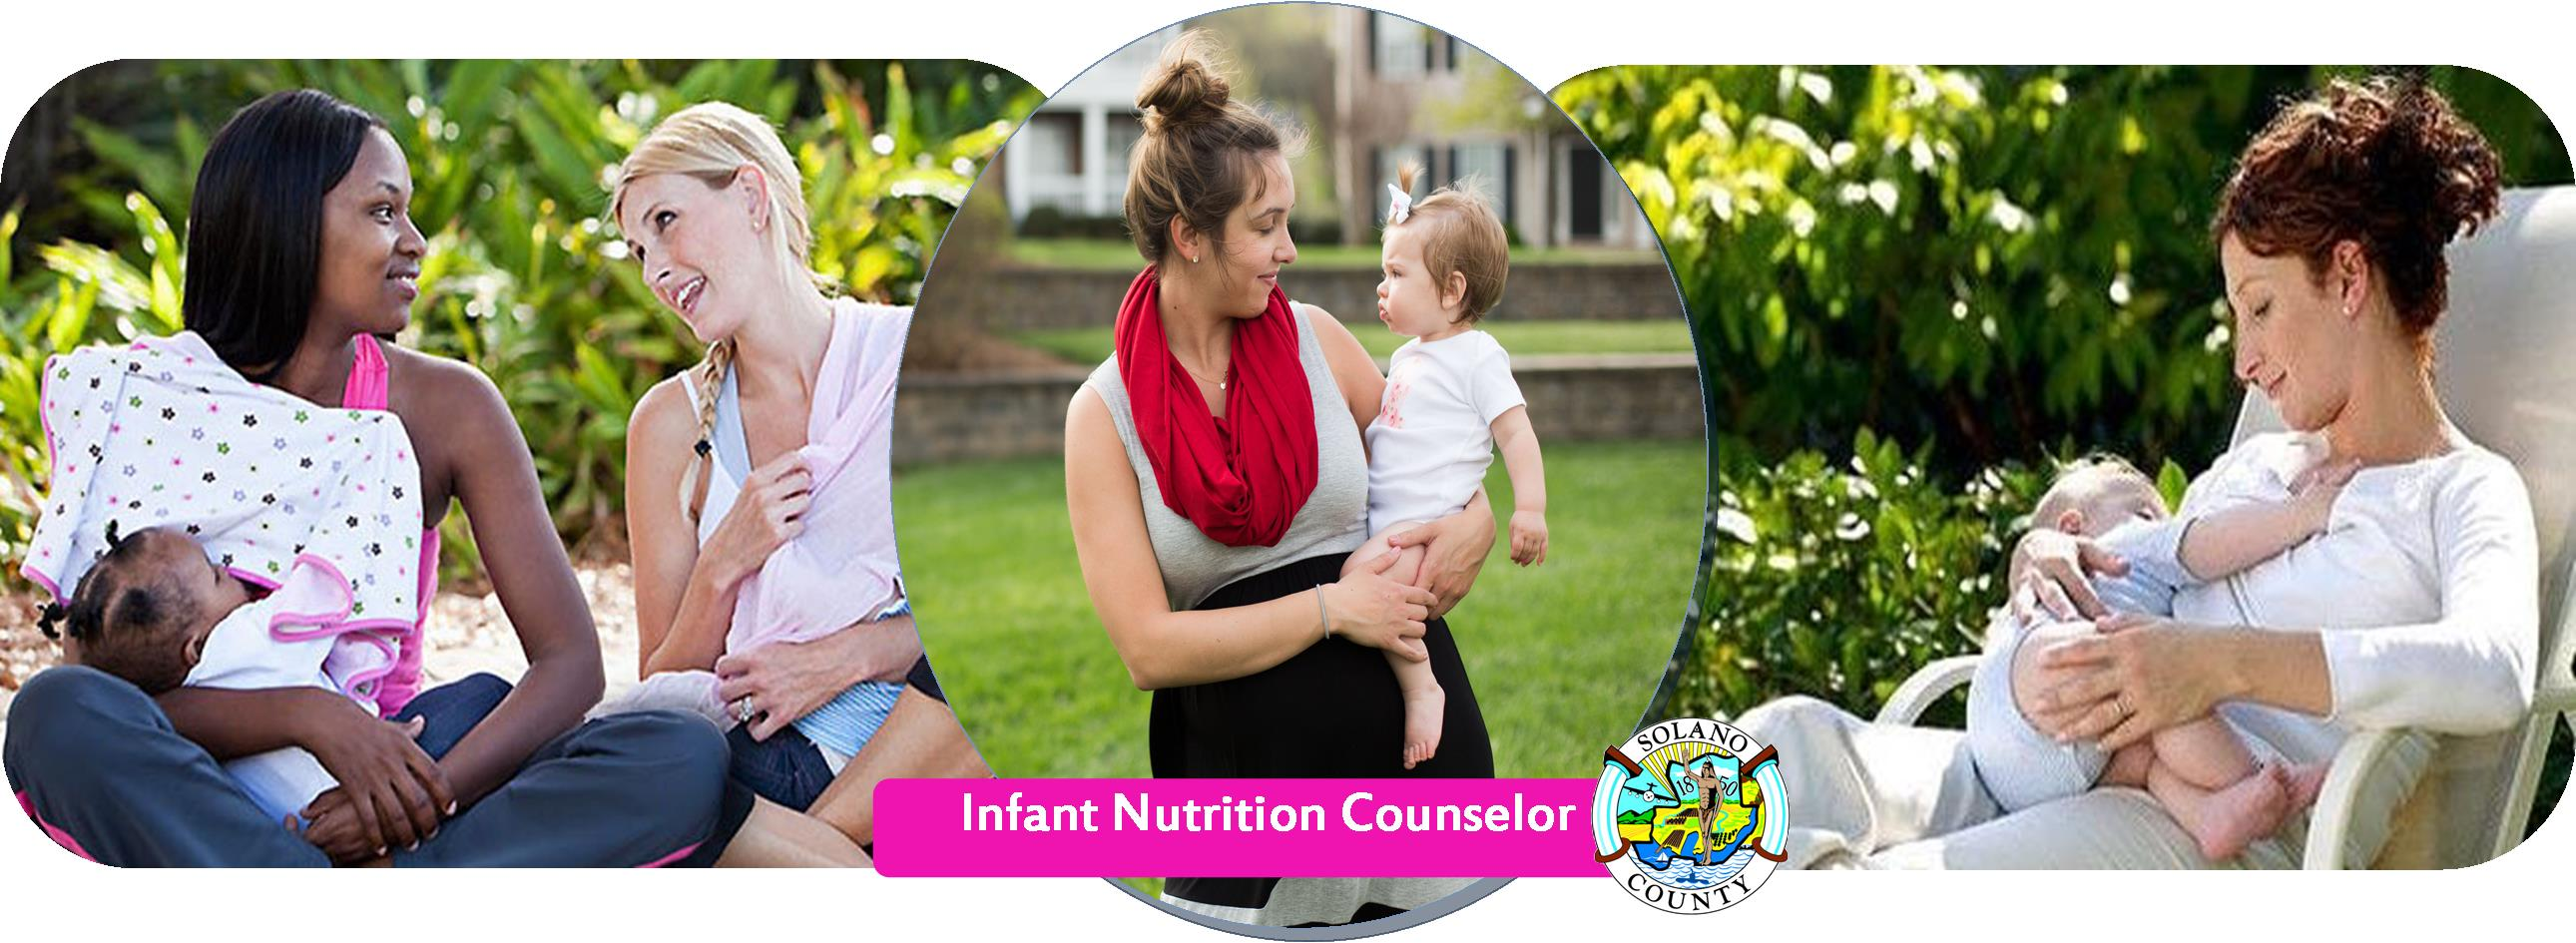 Job Announcement Infant Nutrition Counselor County Of Solano